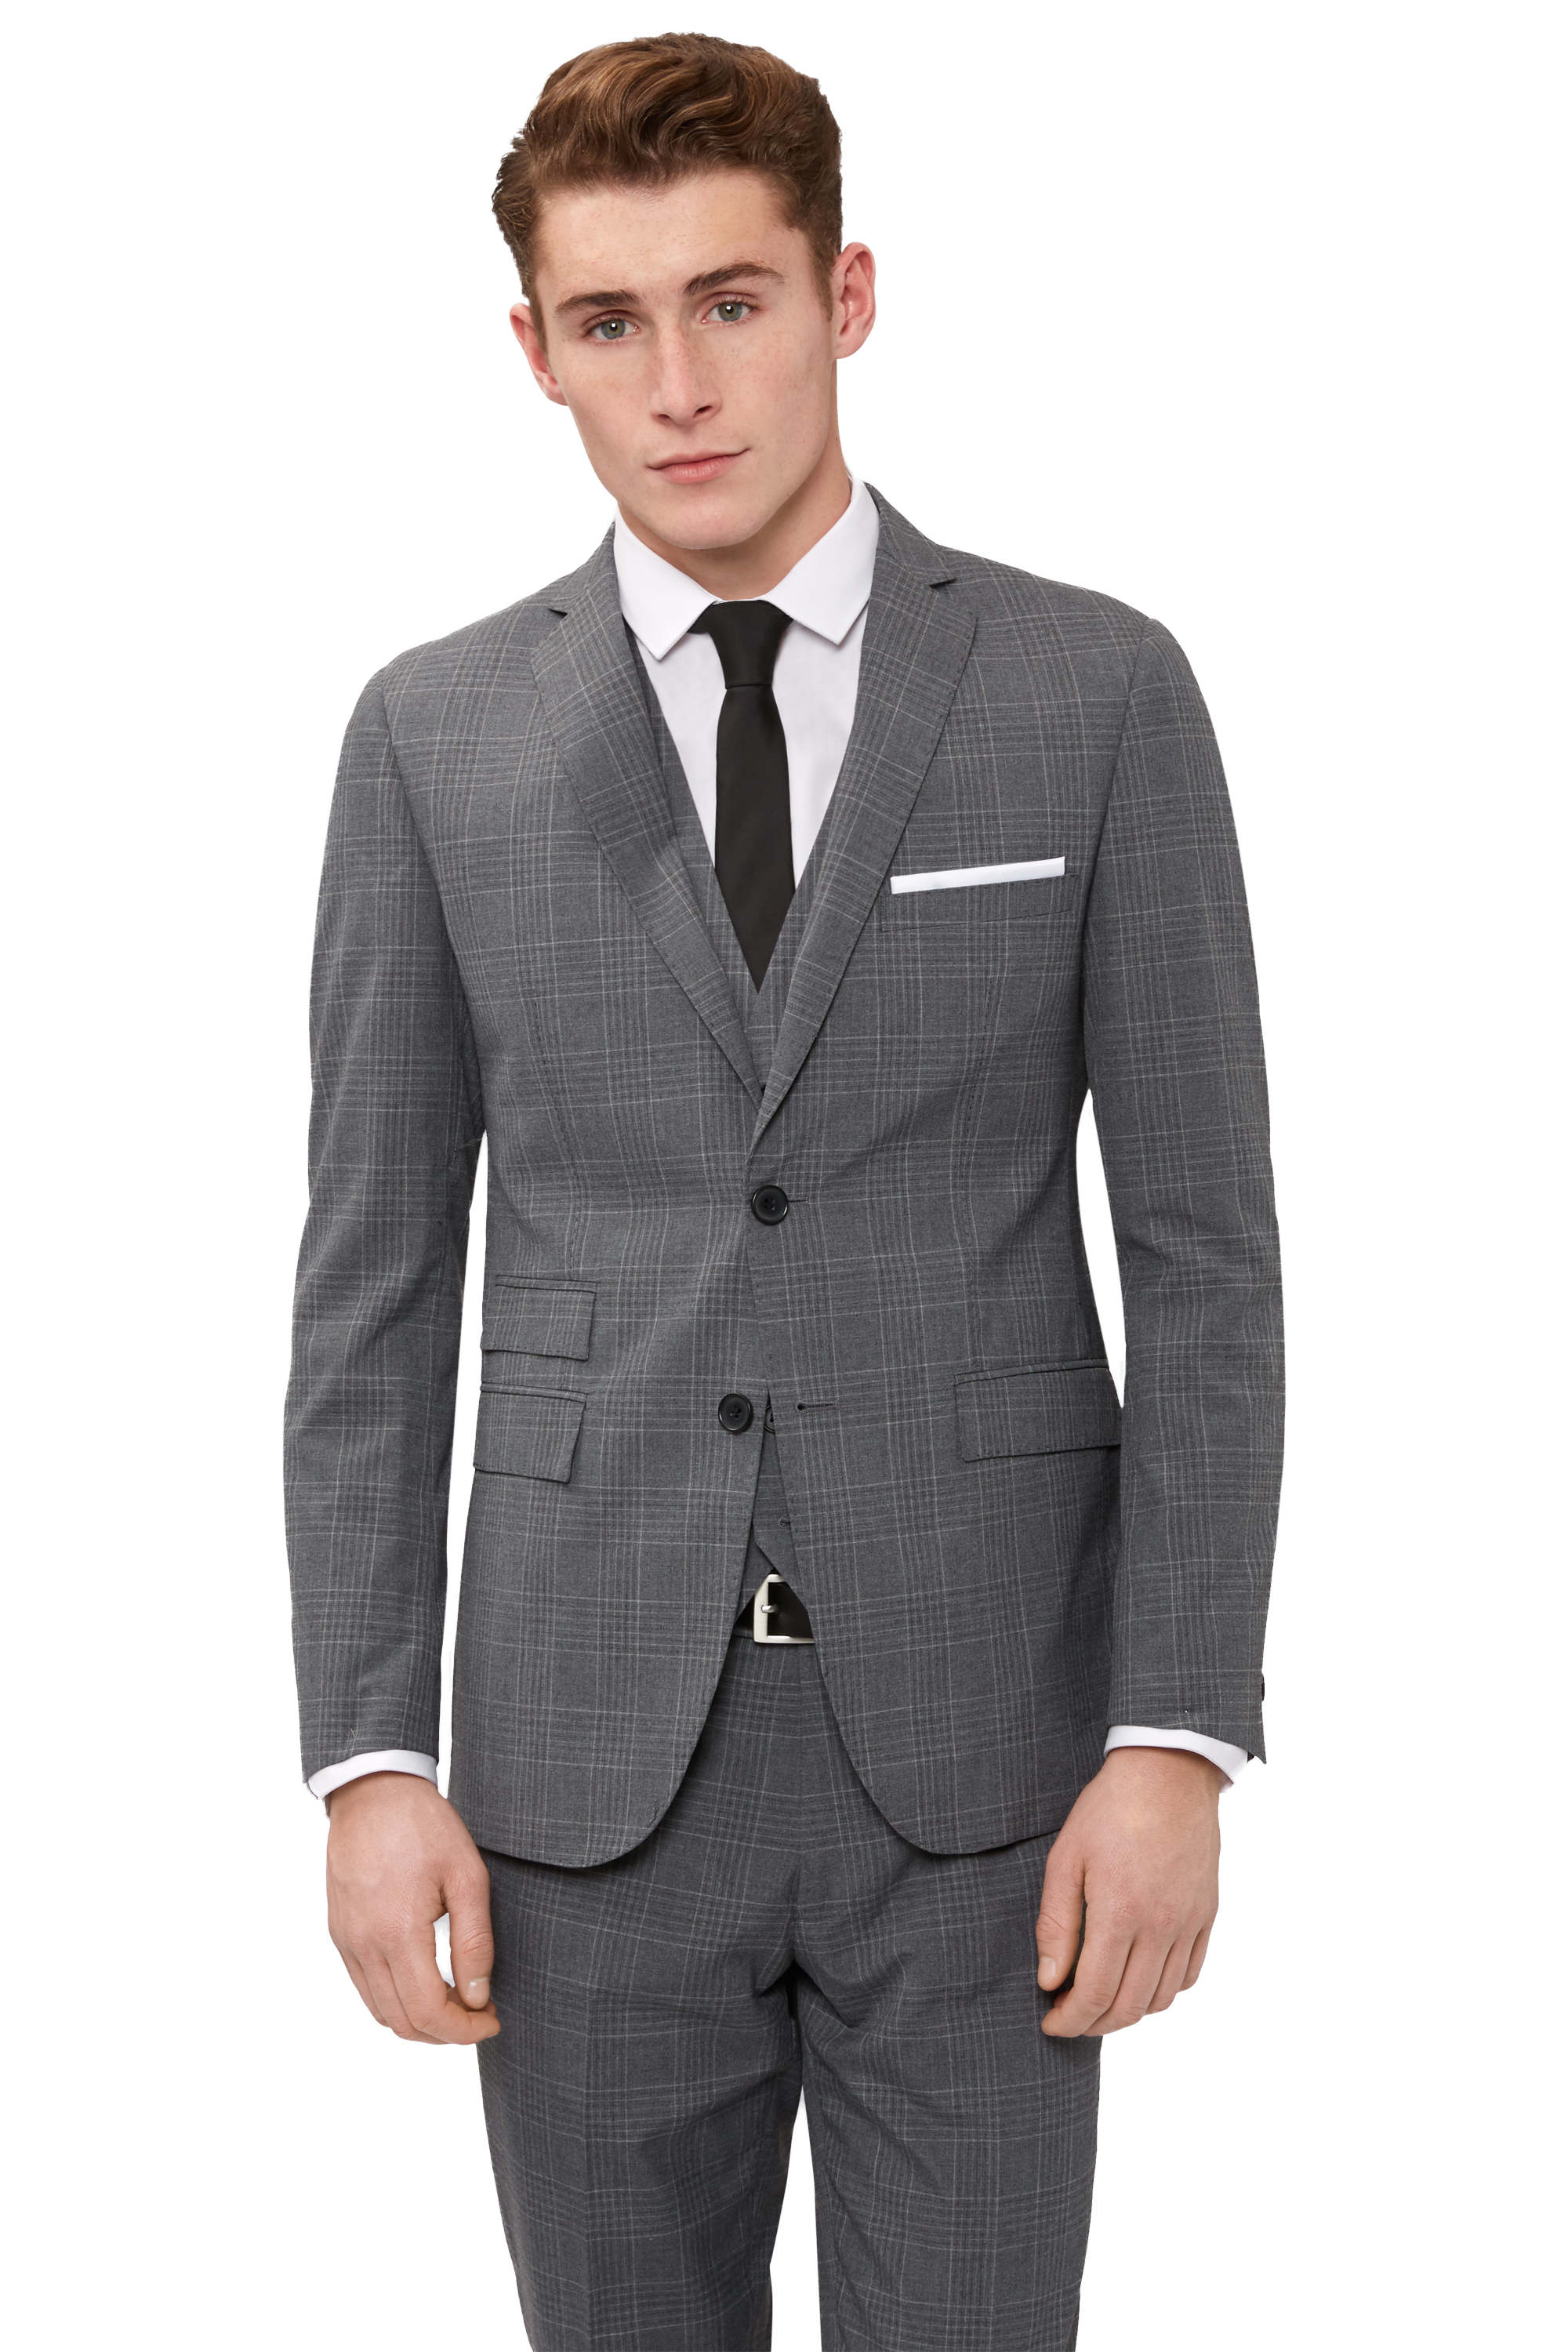 Moss London Mens Check Grey Suit Jacket Skinny Fit Two Button ...